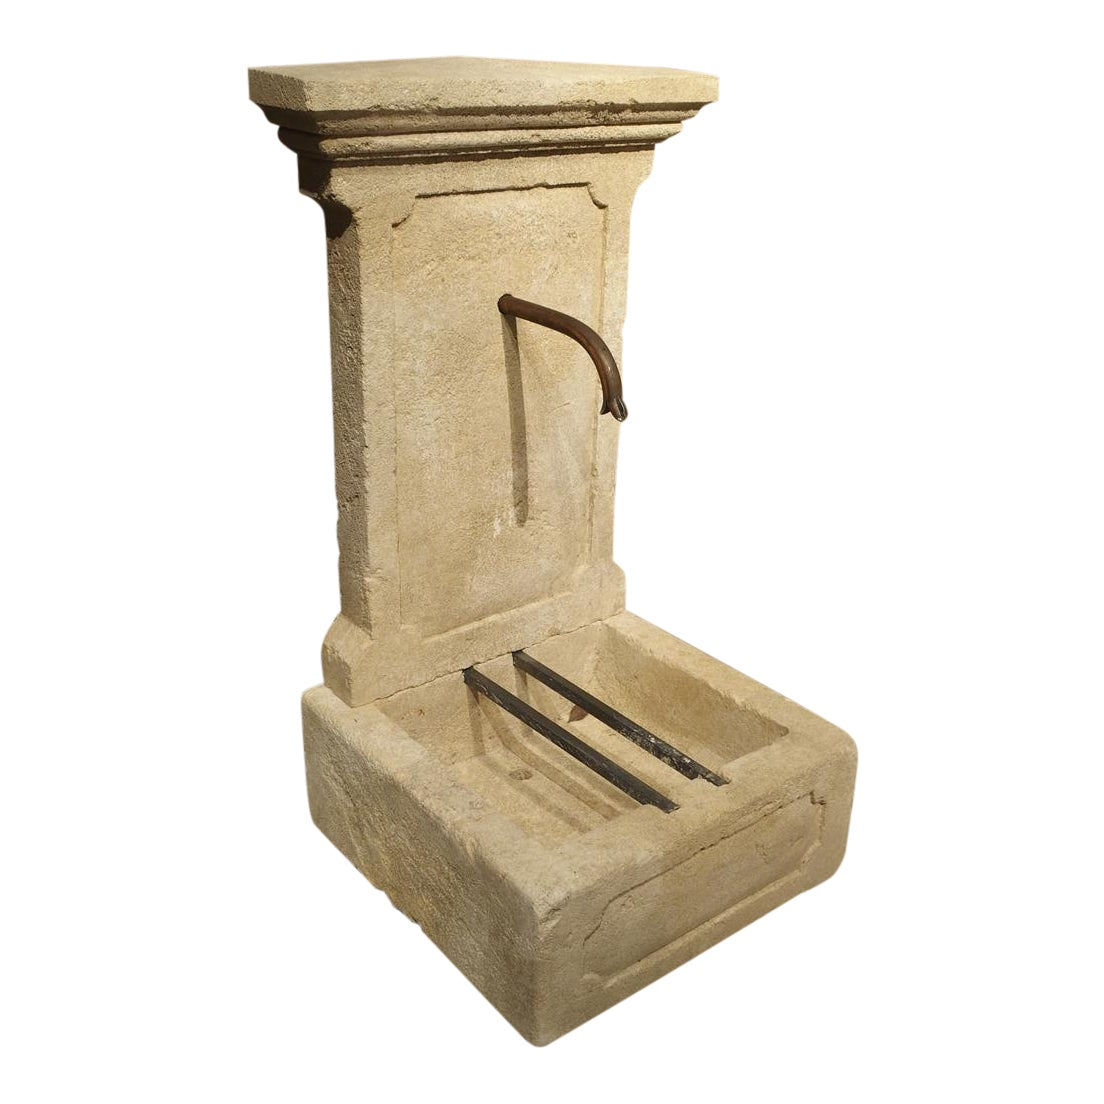 Superb Small Limestone Wall Fountain from Provence, France | DECASO